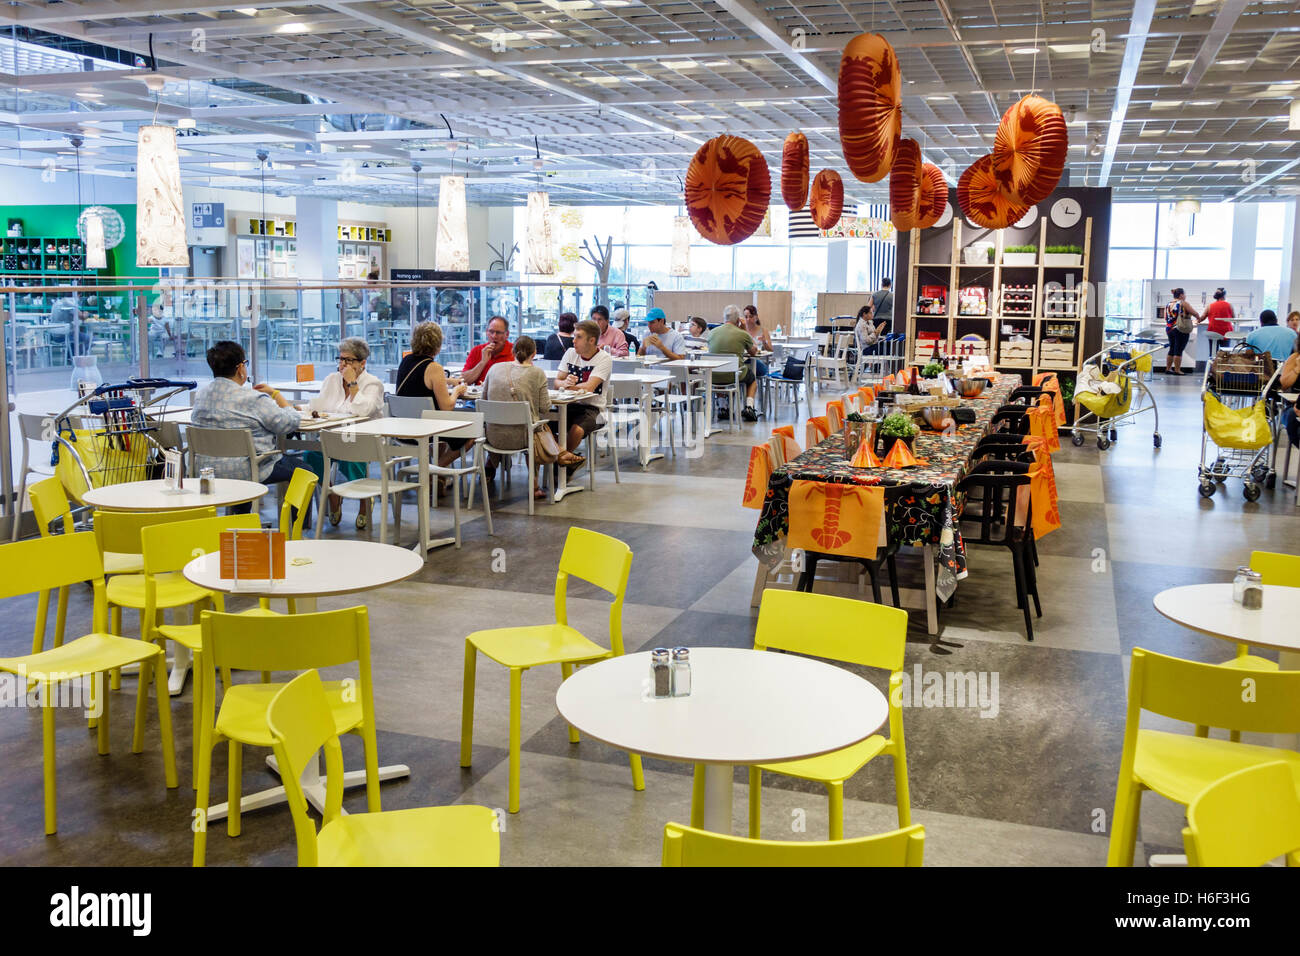 florida miami ikea home furnishings inside cafeteria